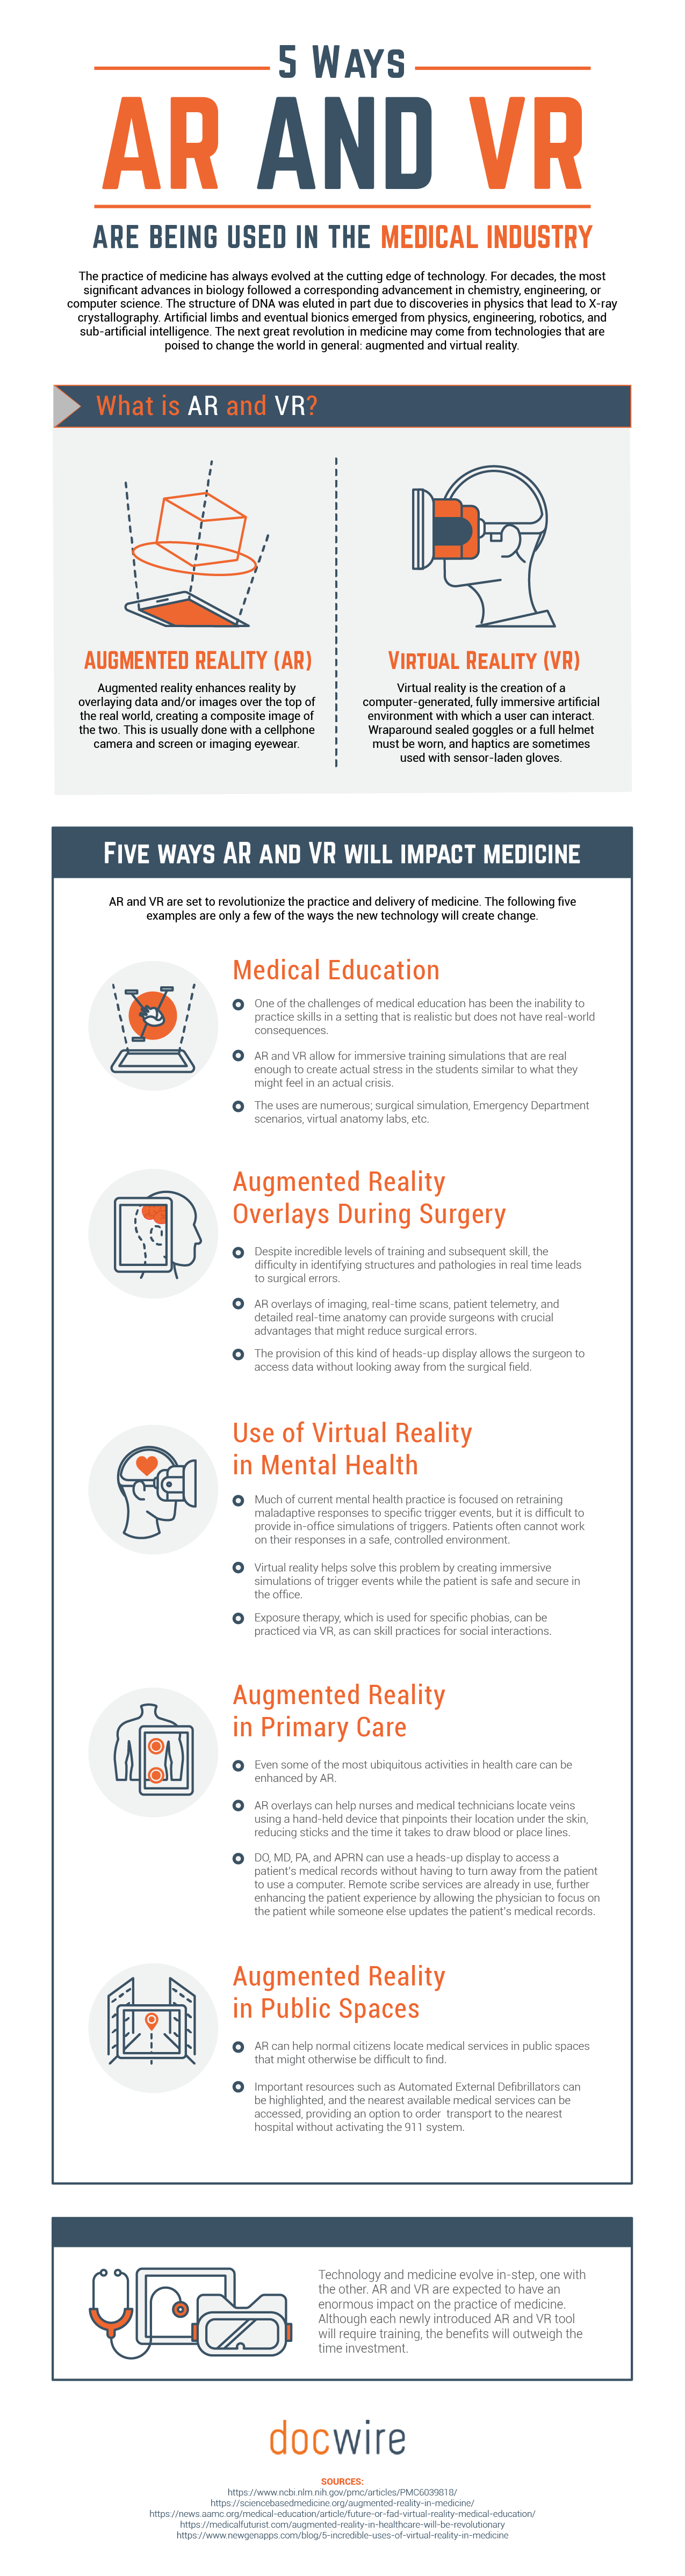 5 Ways VR & AR are Being Used In the Medical Industry Future of Medicine